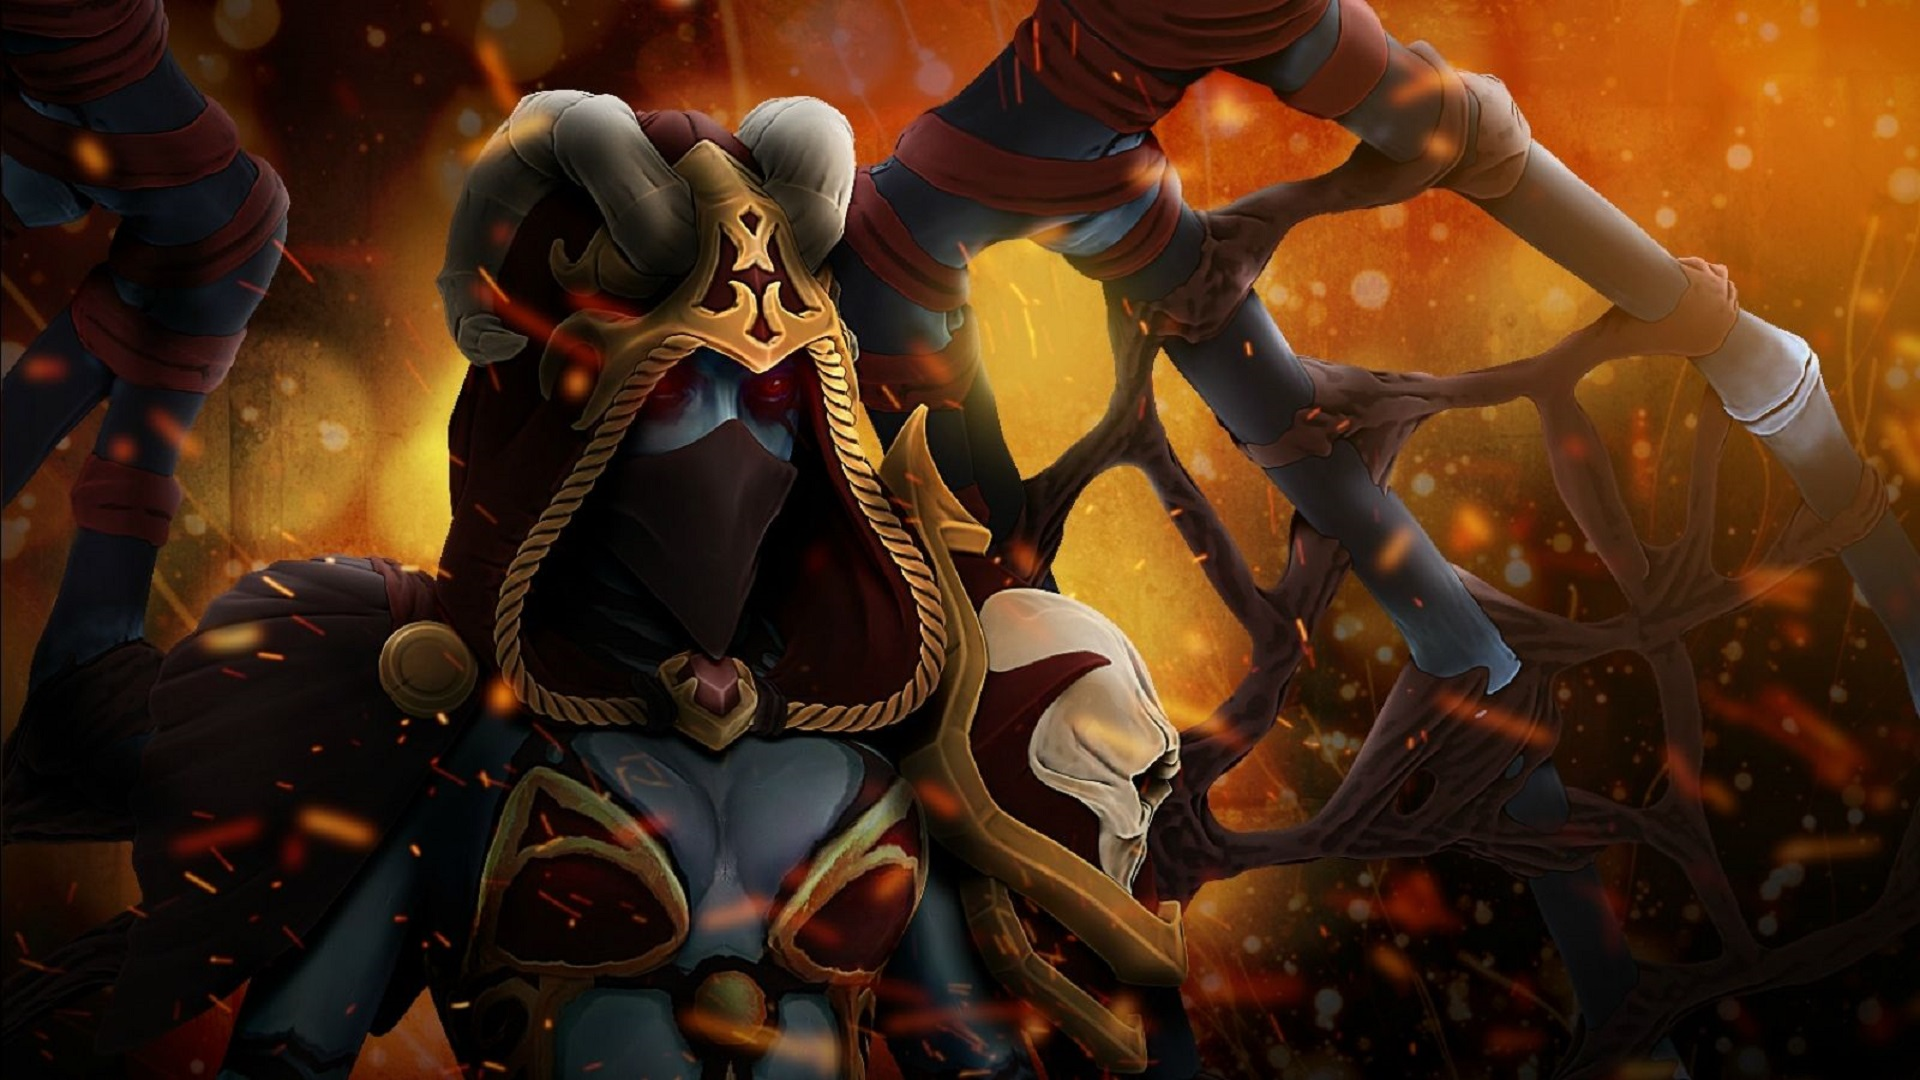 Queen of Pain Throes of Anguish Set  Dota 2 desktop sale